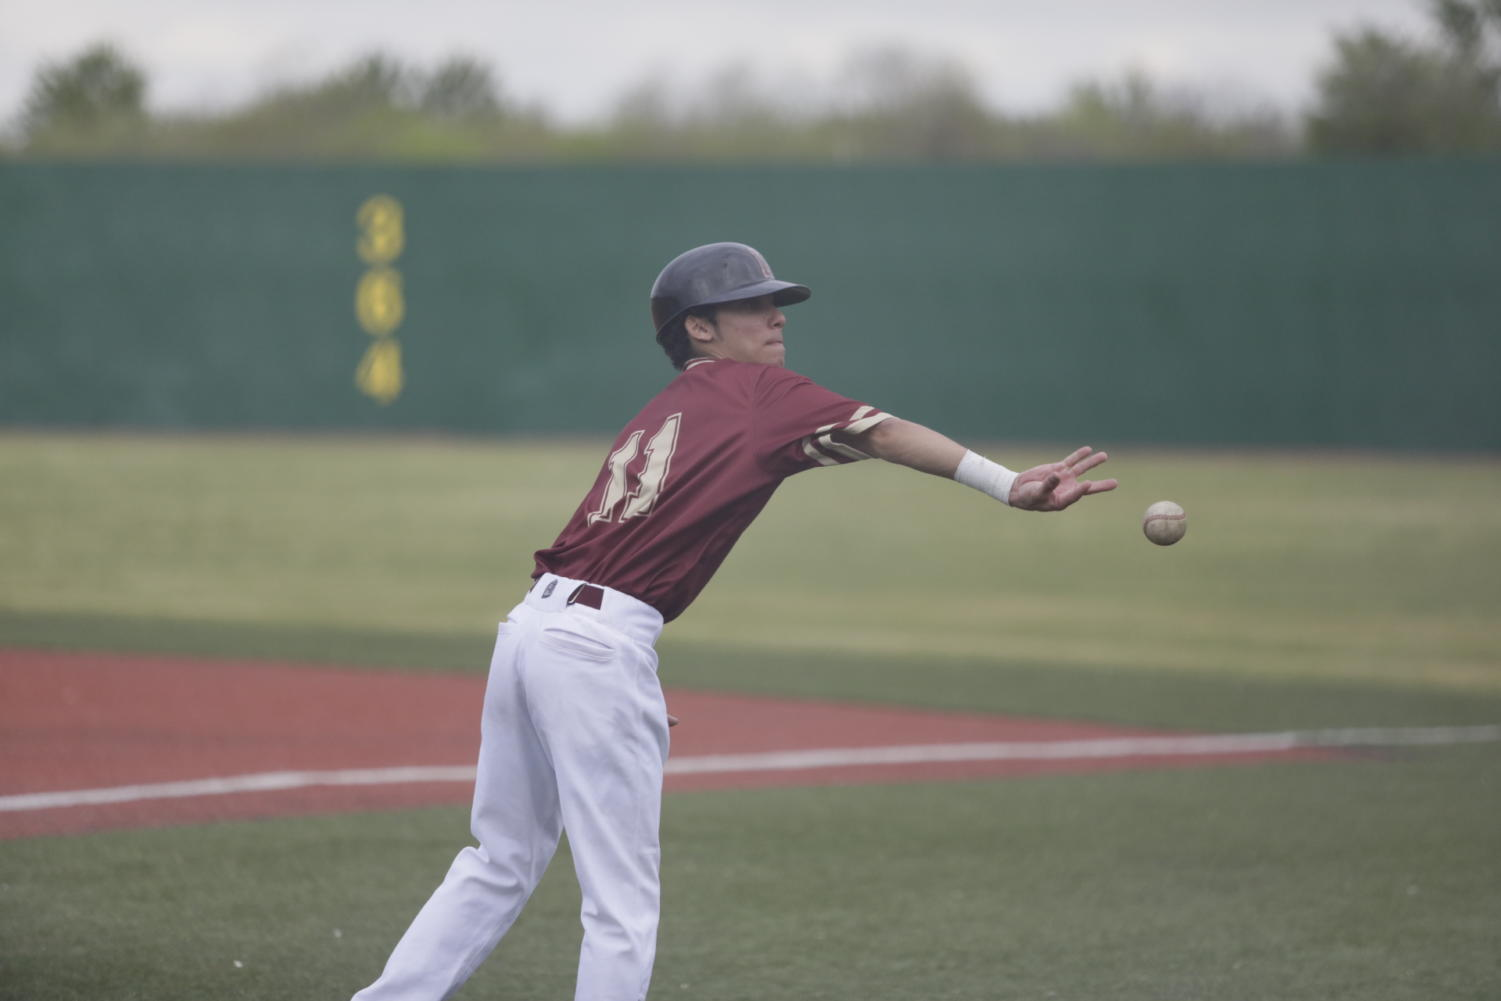 Biophysics freshman Derek Oliveras (11) throws a ball at Segnette Field. After their home series versus Martin Methodist, Loyola's baseball team remains winless in conference play. Photo credit: Andres Fuentes